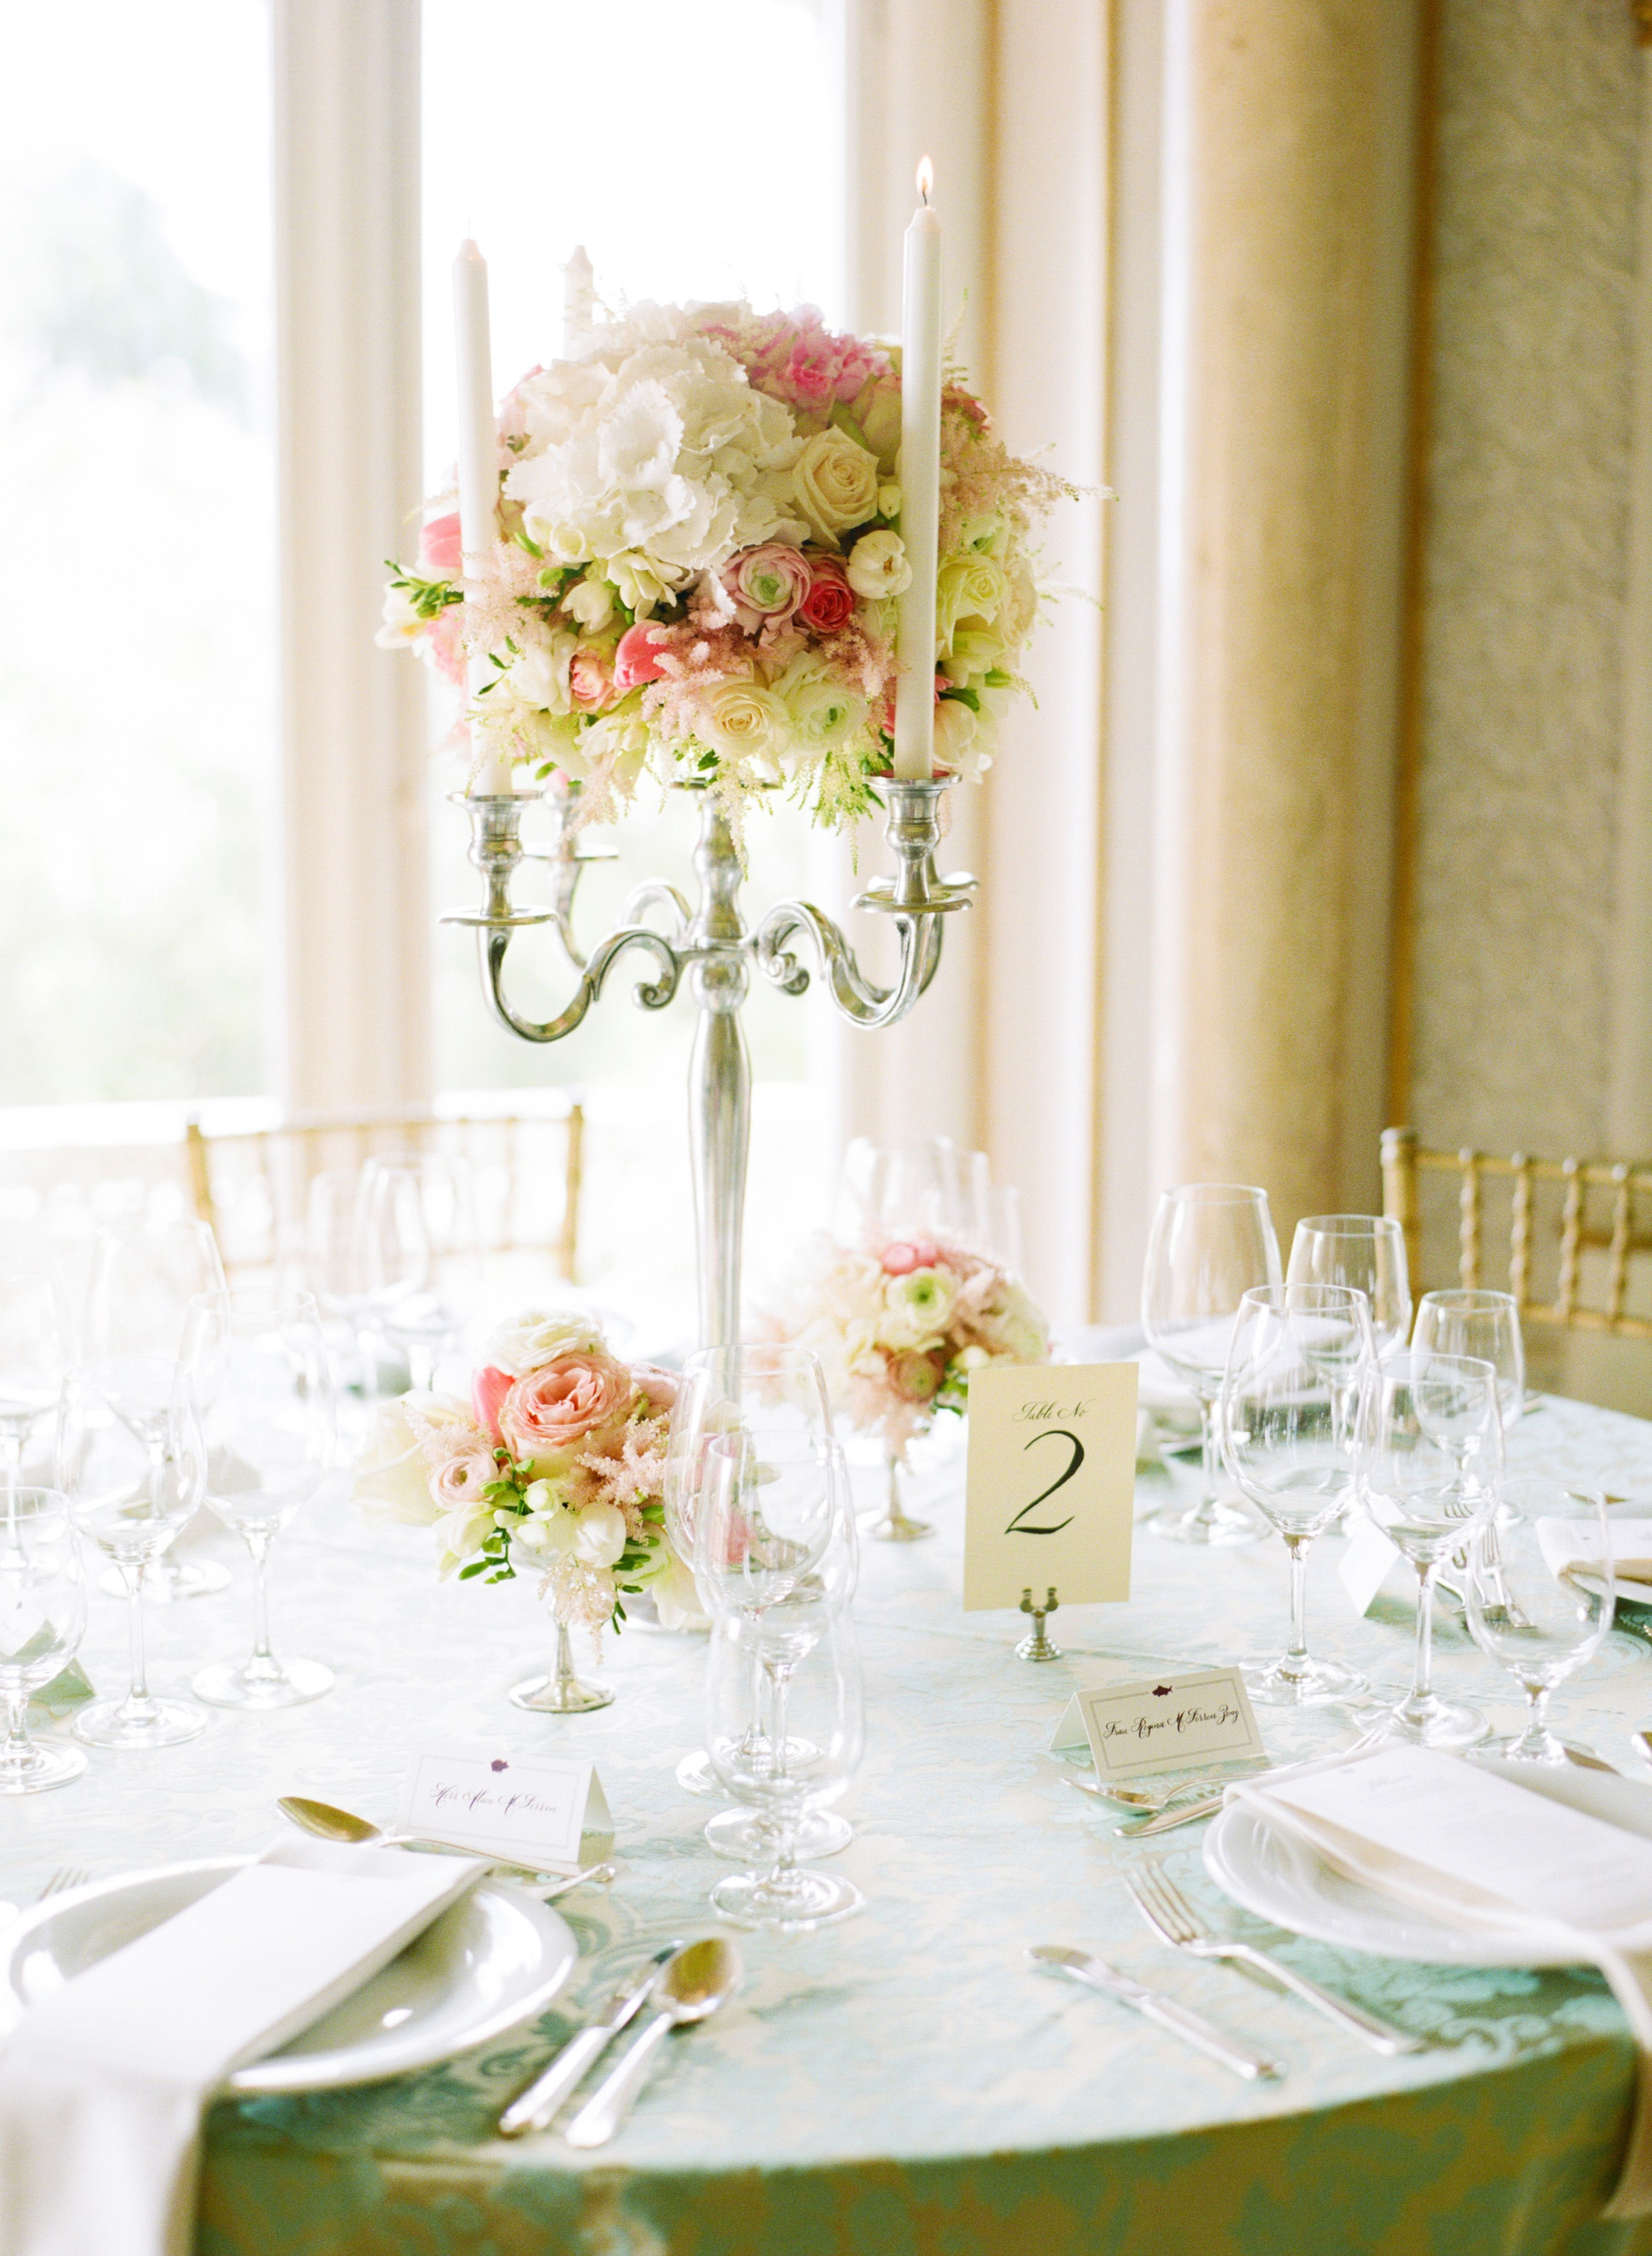 Photography: Katie Stoops Photography - katiestoops.com  Read More: http://www.stylemepretty.com/2014/05/13/portugal-palace-destination-wedding/